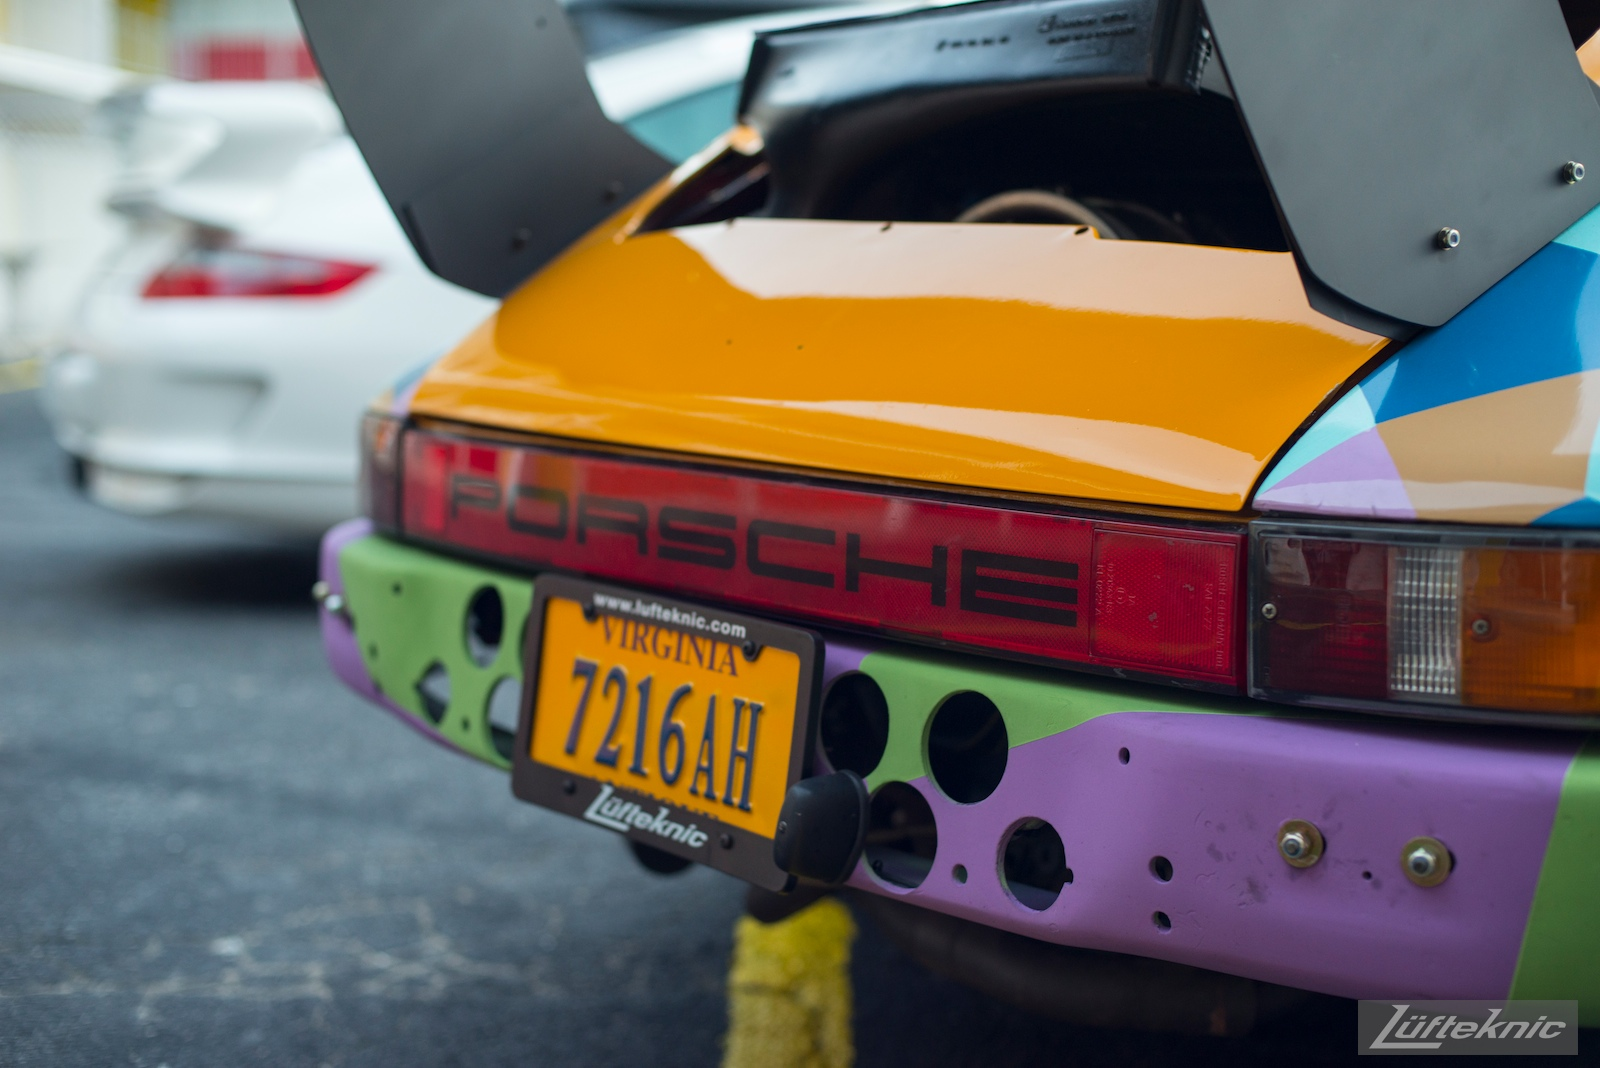 A close up of the Lüfteknic #projectstuka Porsche 930 Turbo rear end with a gt3